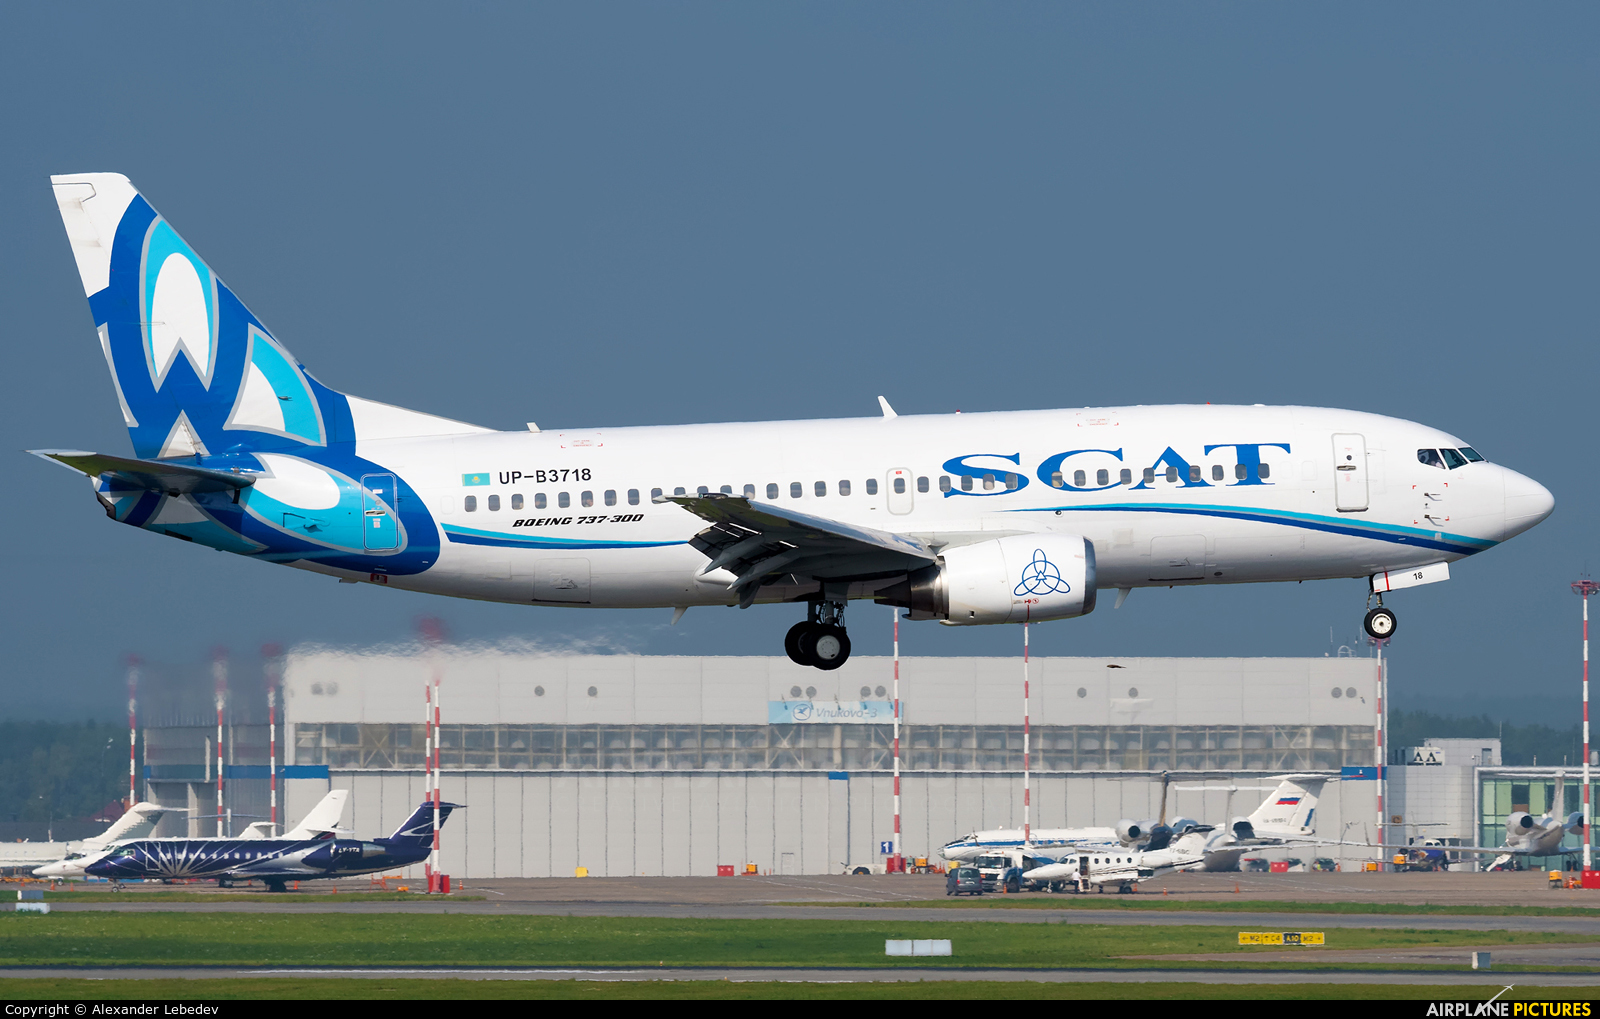 SCAT Airlines UP-B3718 aircraft at Moscow - Vnukovo